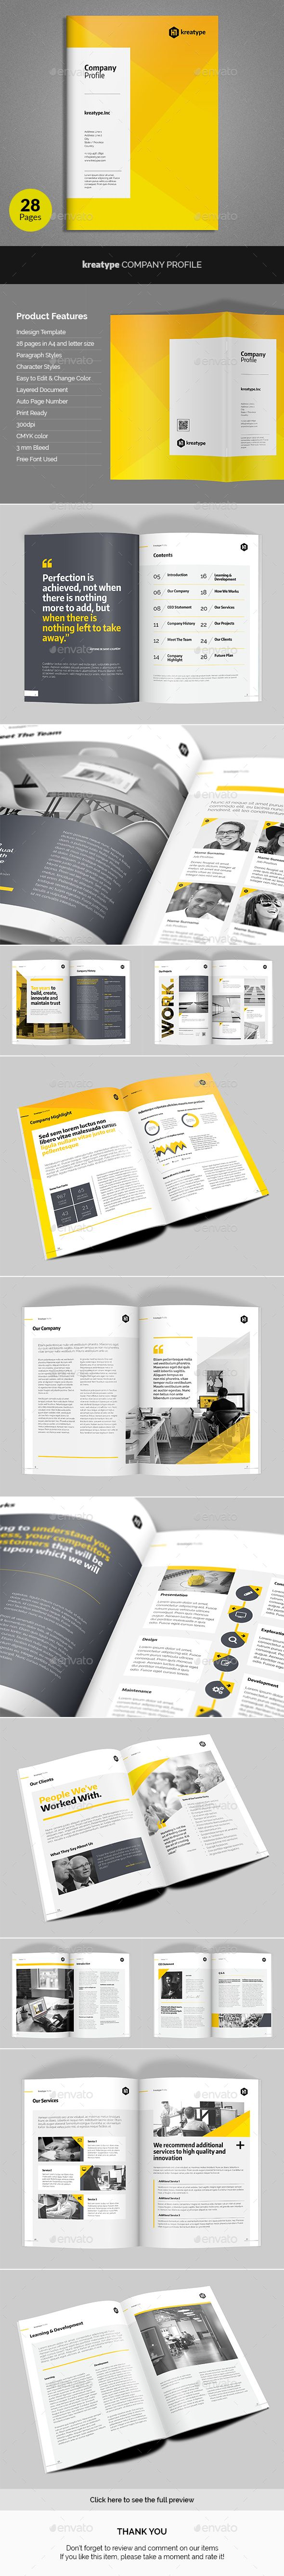 Kreatype Company Profile Template InDesign INDD. Download here: http://graphicriver.net/item/kreatype-company-profile/16449256?ref=ksioks